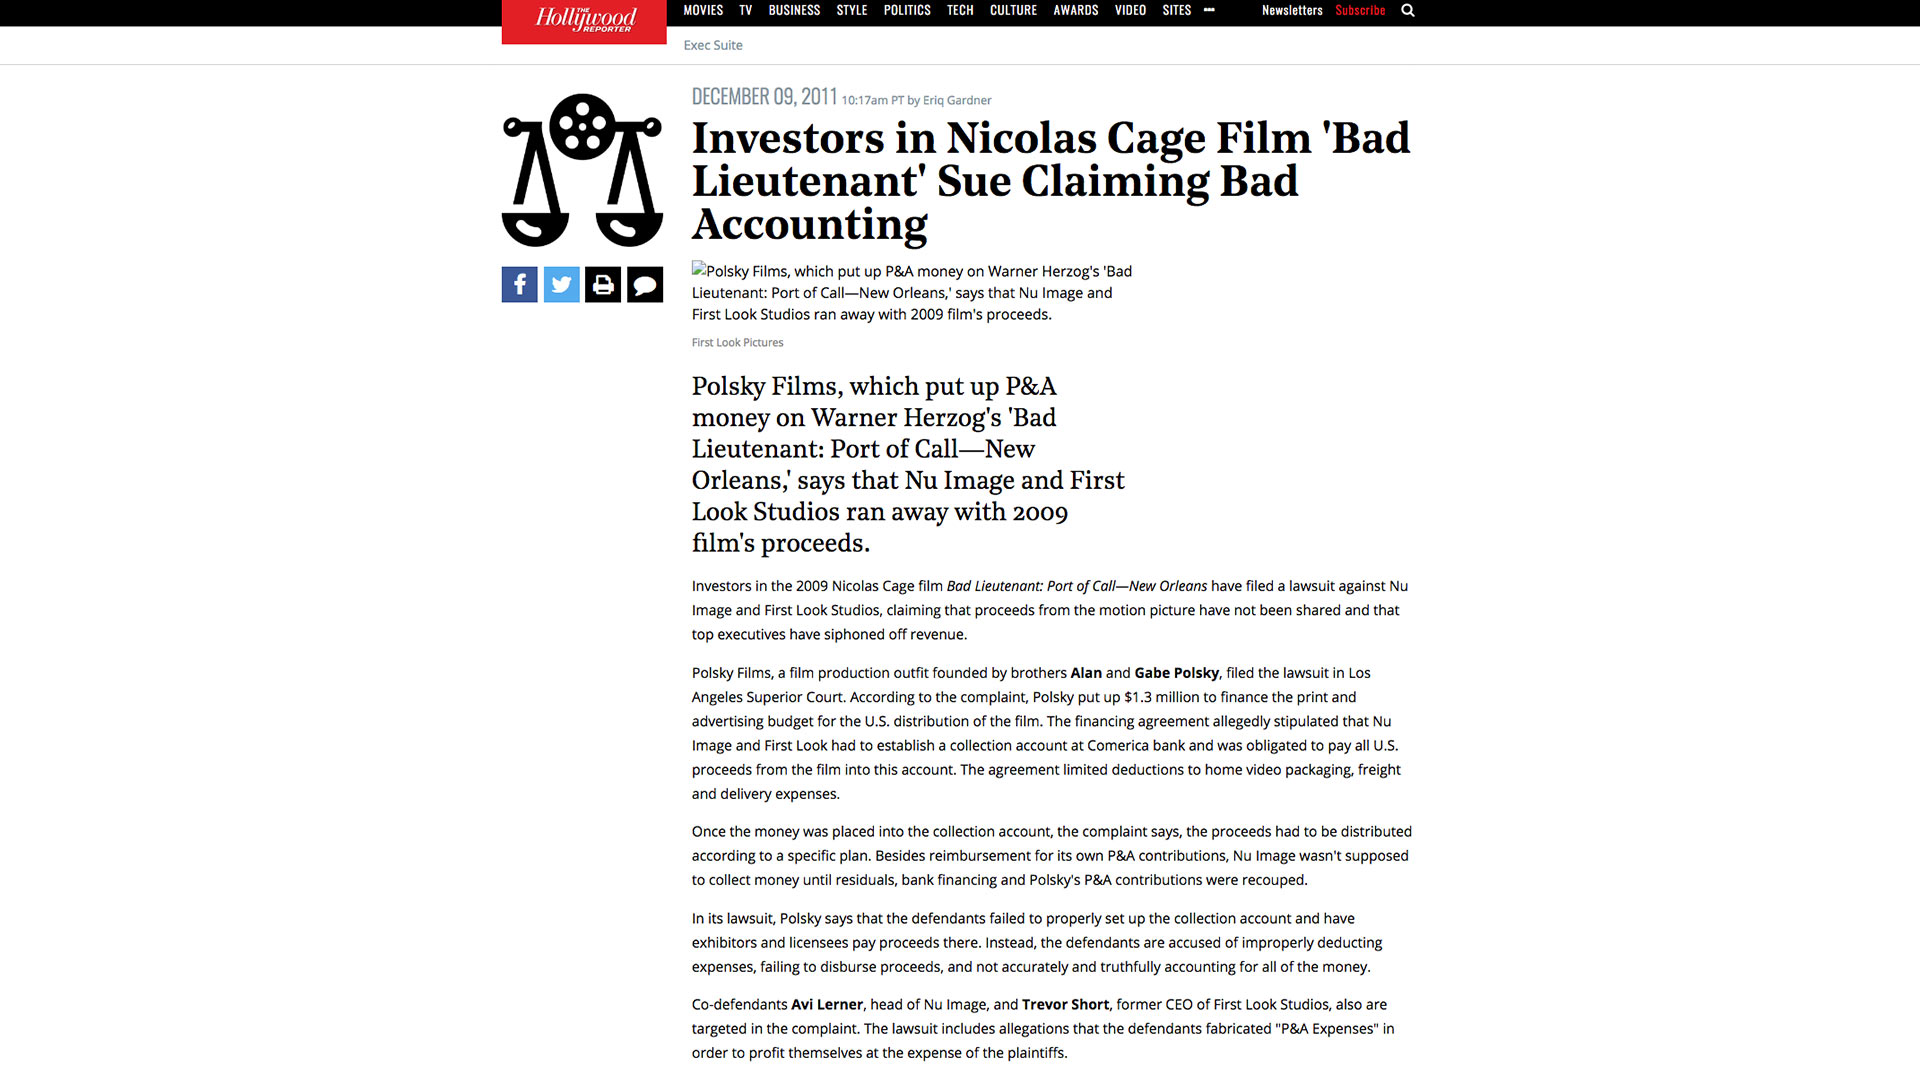 Fairness Rocks News Investors in Nicolas Cage Film 'Bad Lieutenant' Sue Claiming Bad Accounting